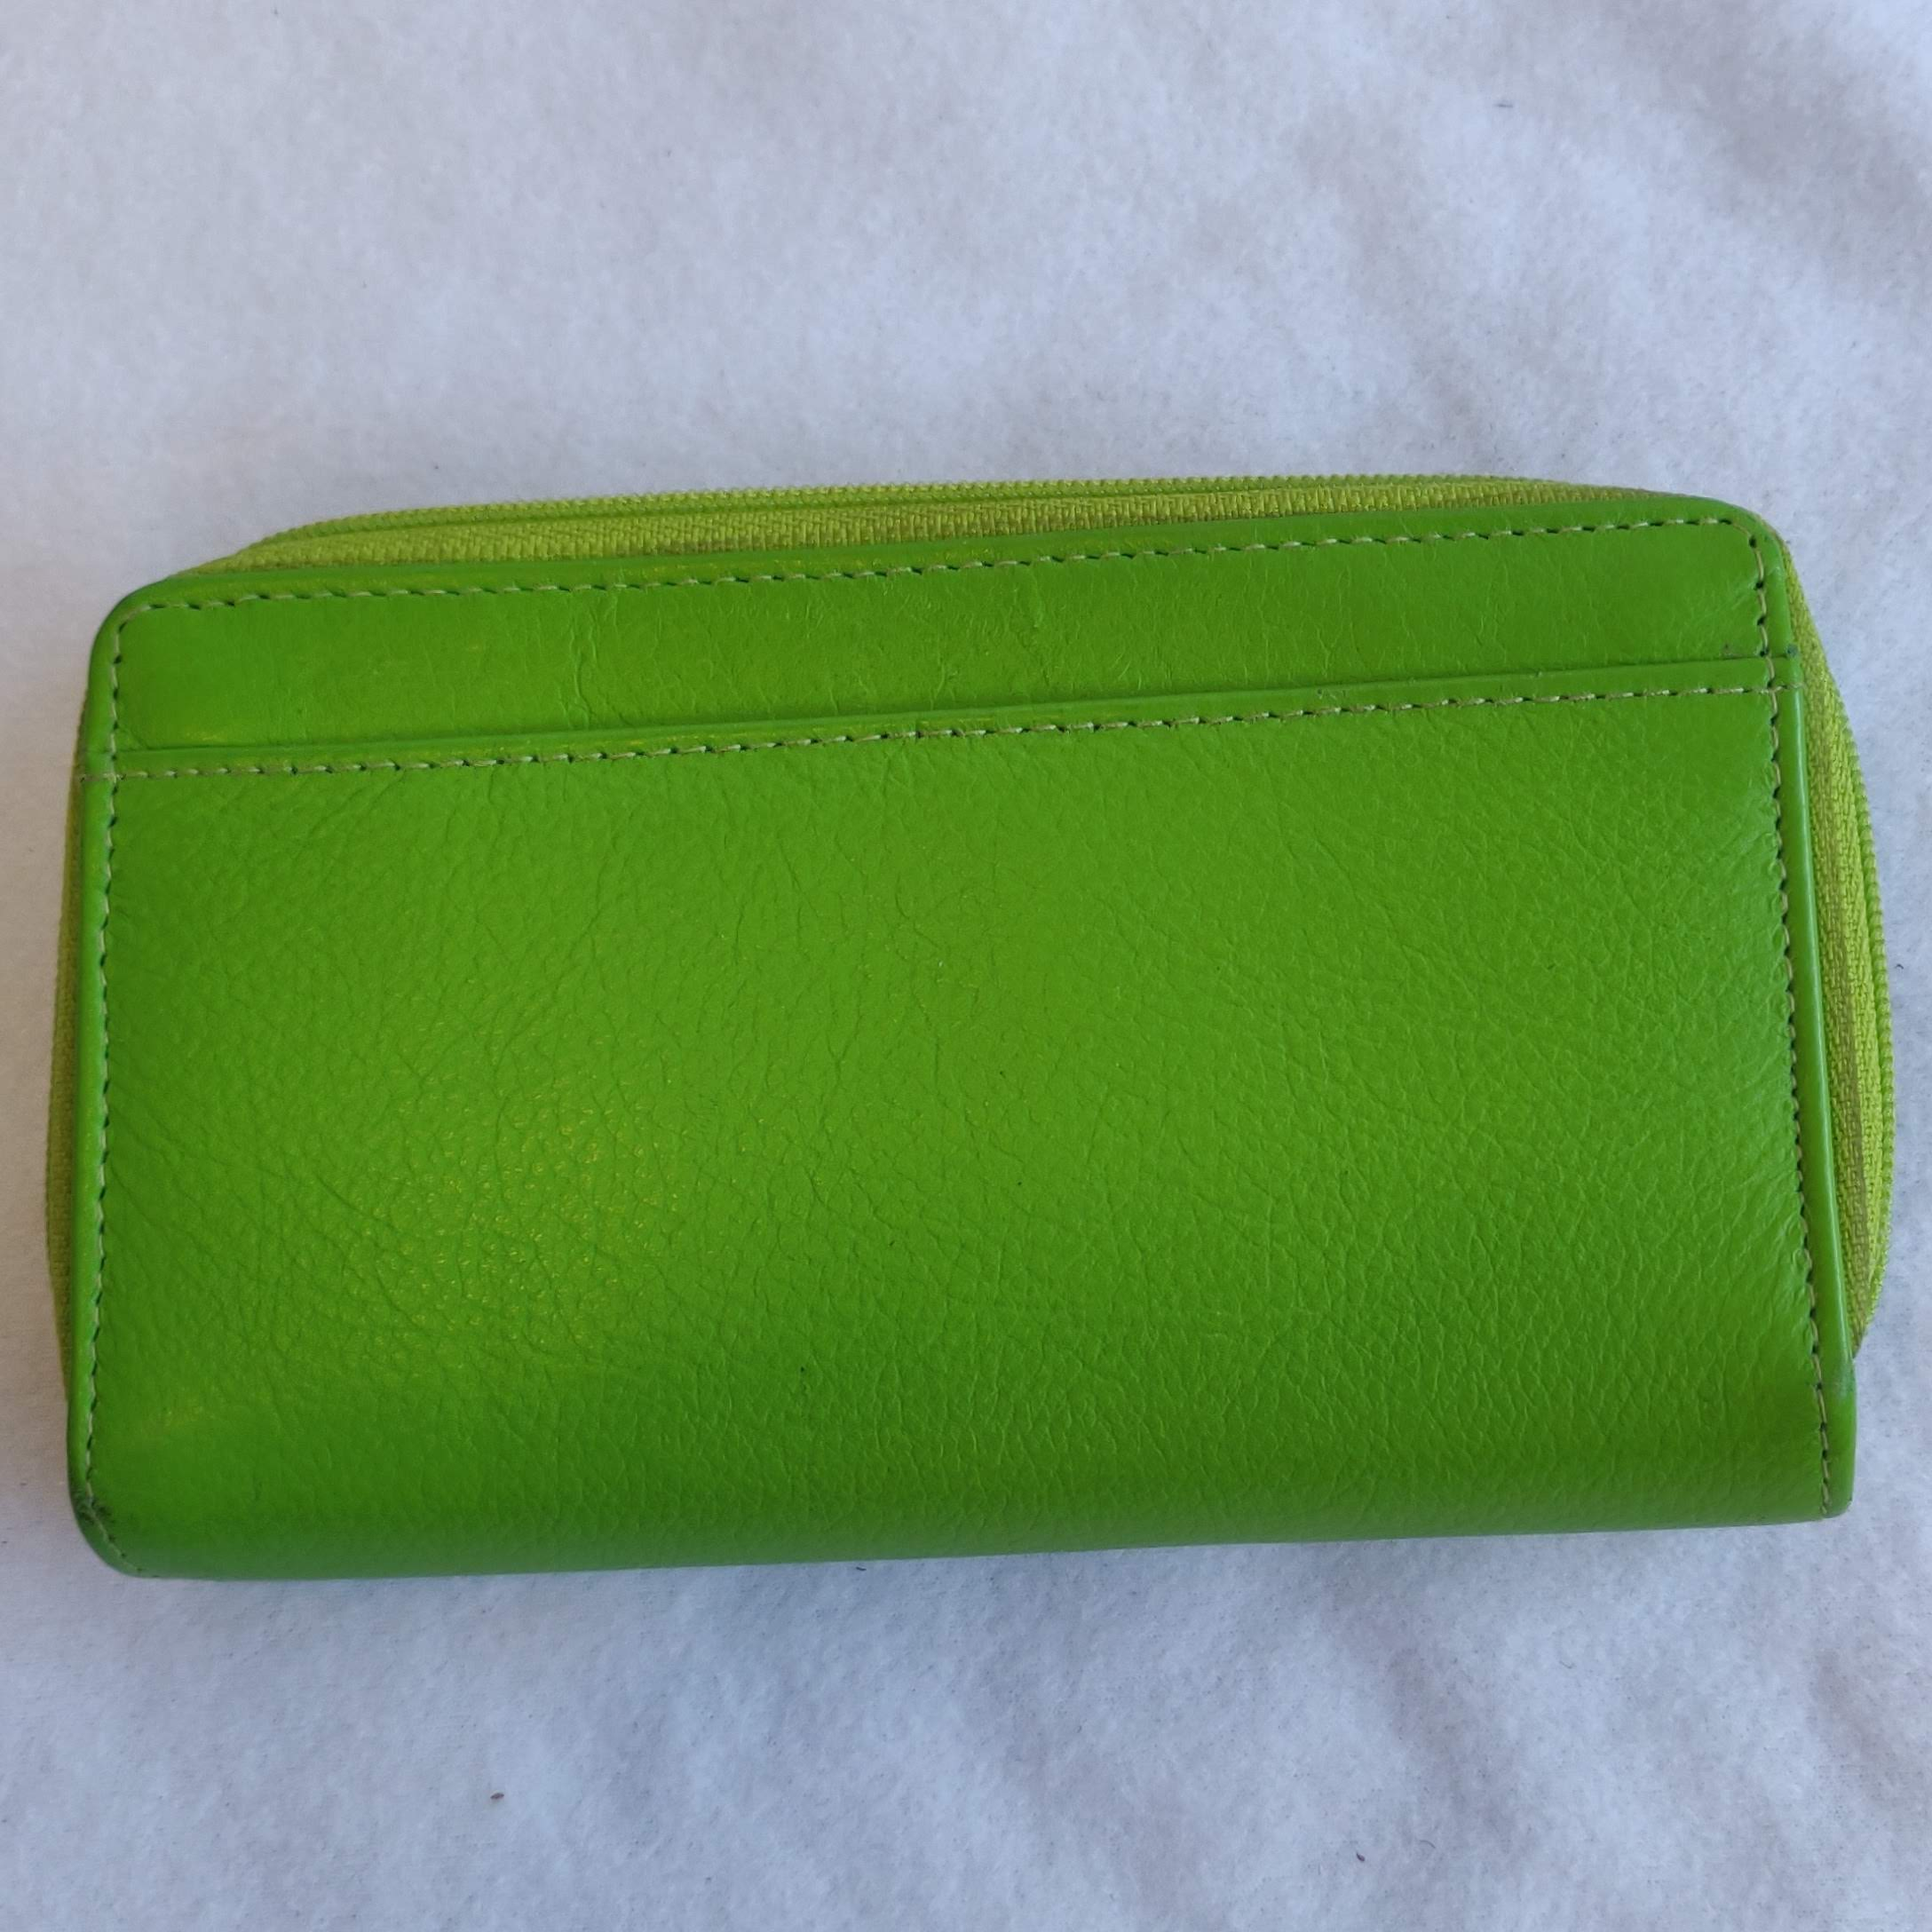 Ladies Leather Purse Lime Green 603612